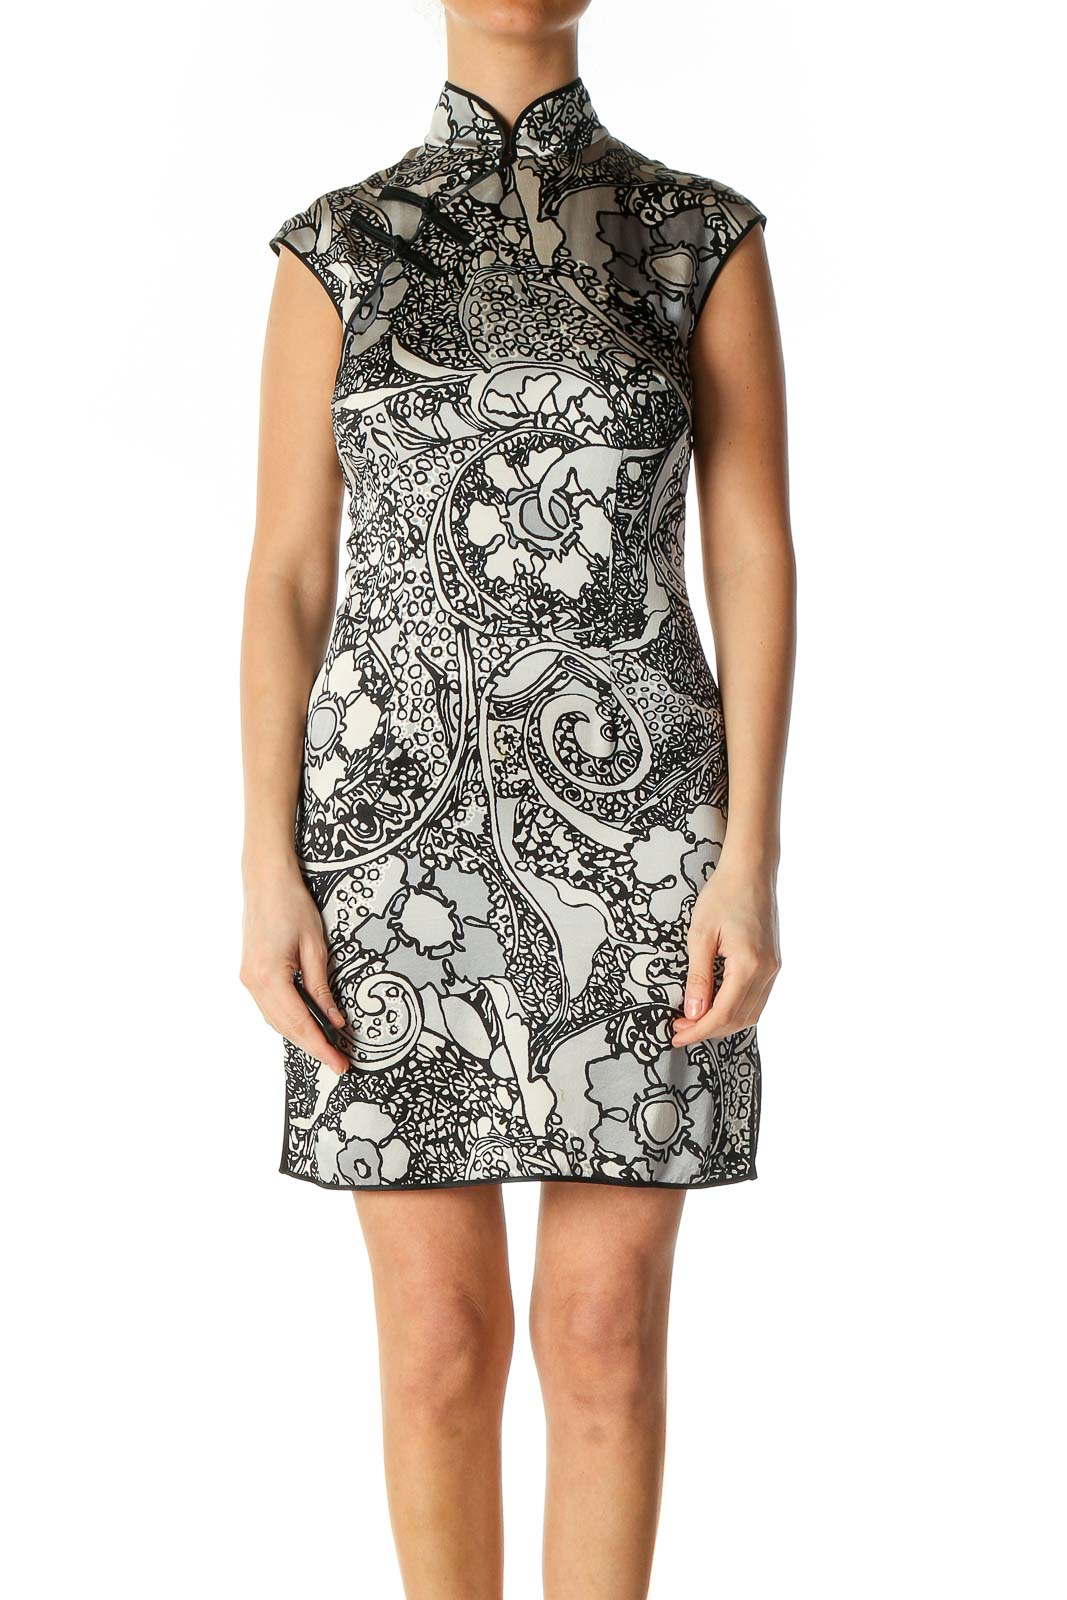 Gray Floral Print Chic Sheath Dress Front